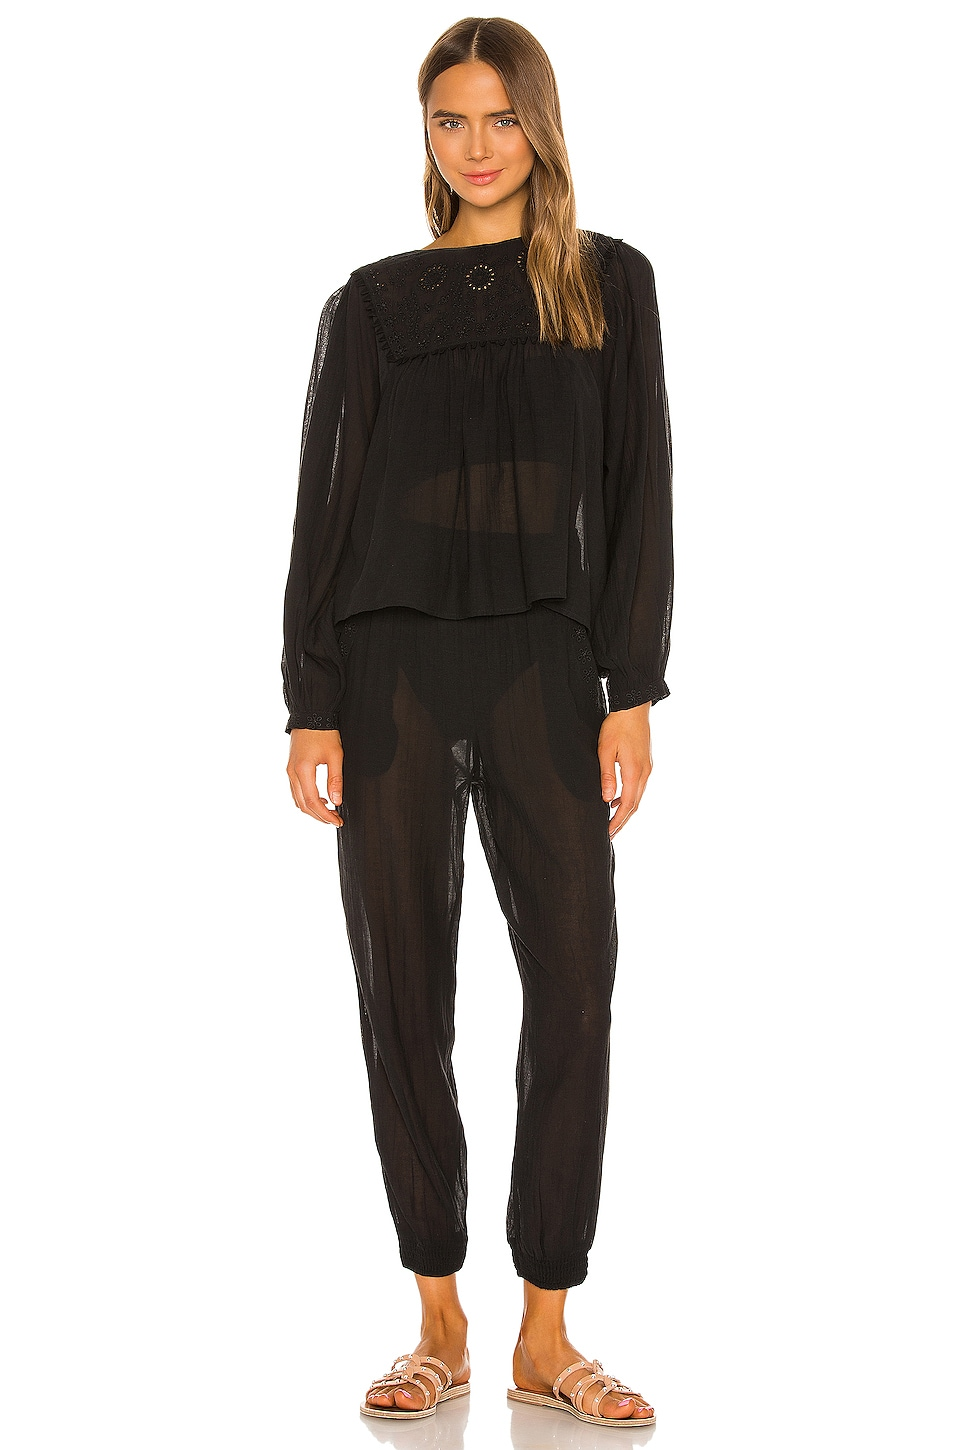 Free People Valencia Set in Black